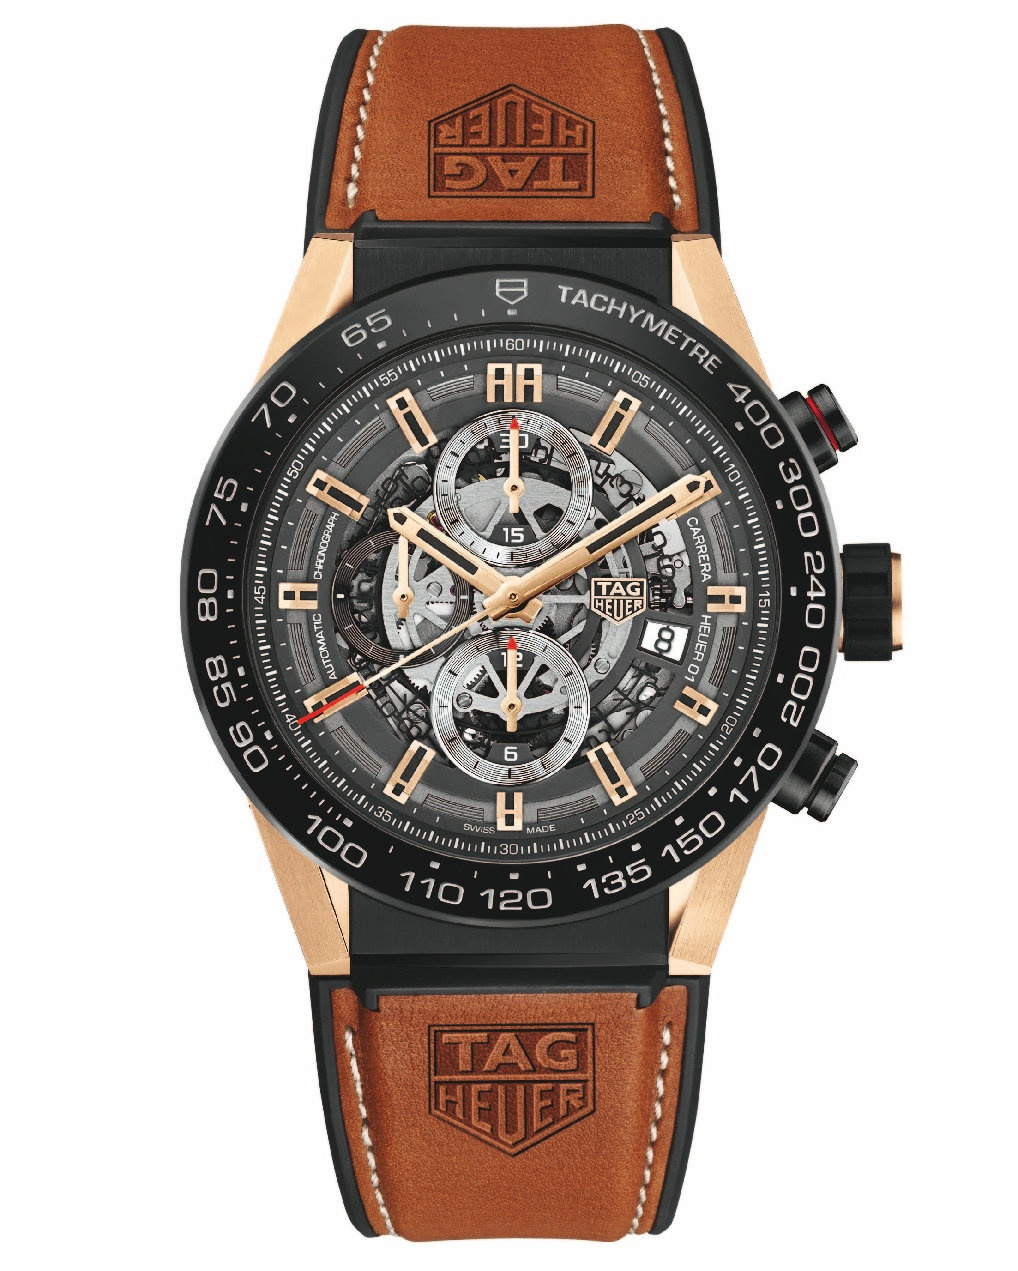 13eaed632fd The new homemade Chronograph has all the characteristics of the first  generation of Heuer-01 watches including hollow dials which have become a  symbol of ...